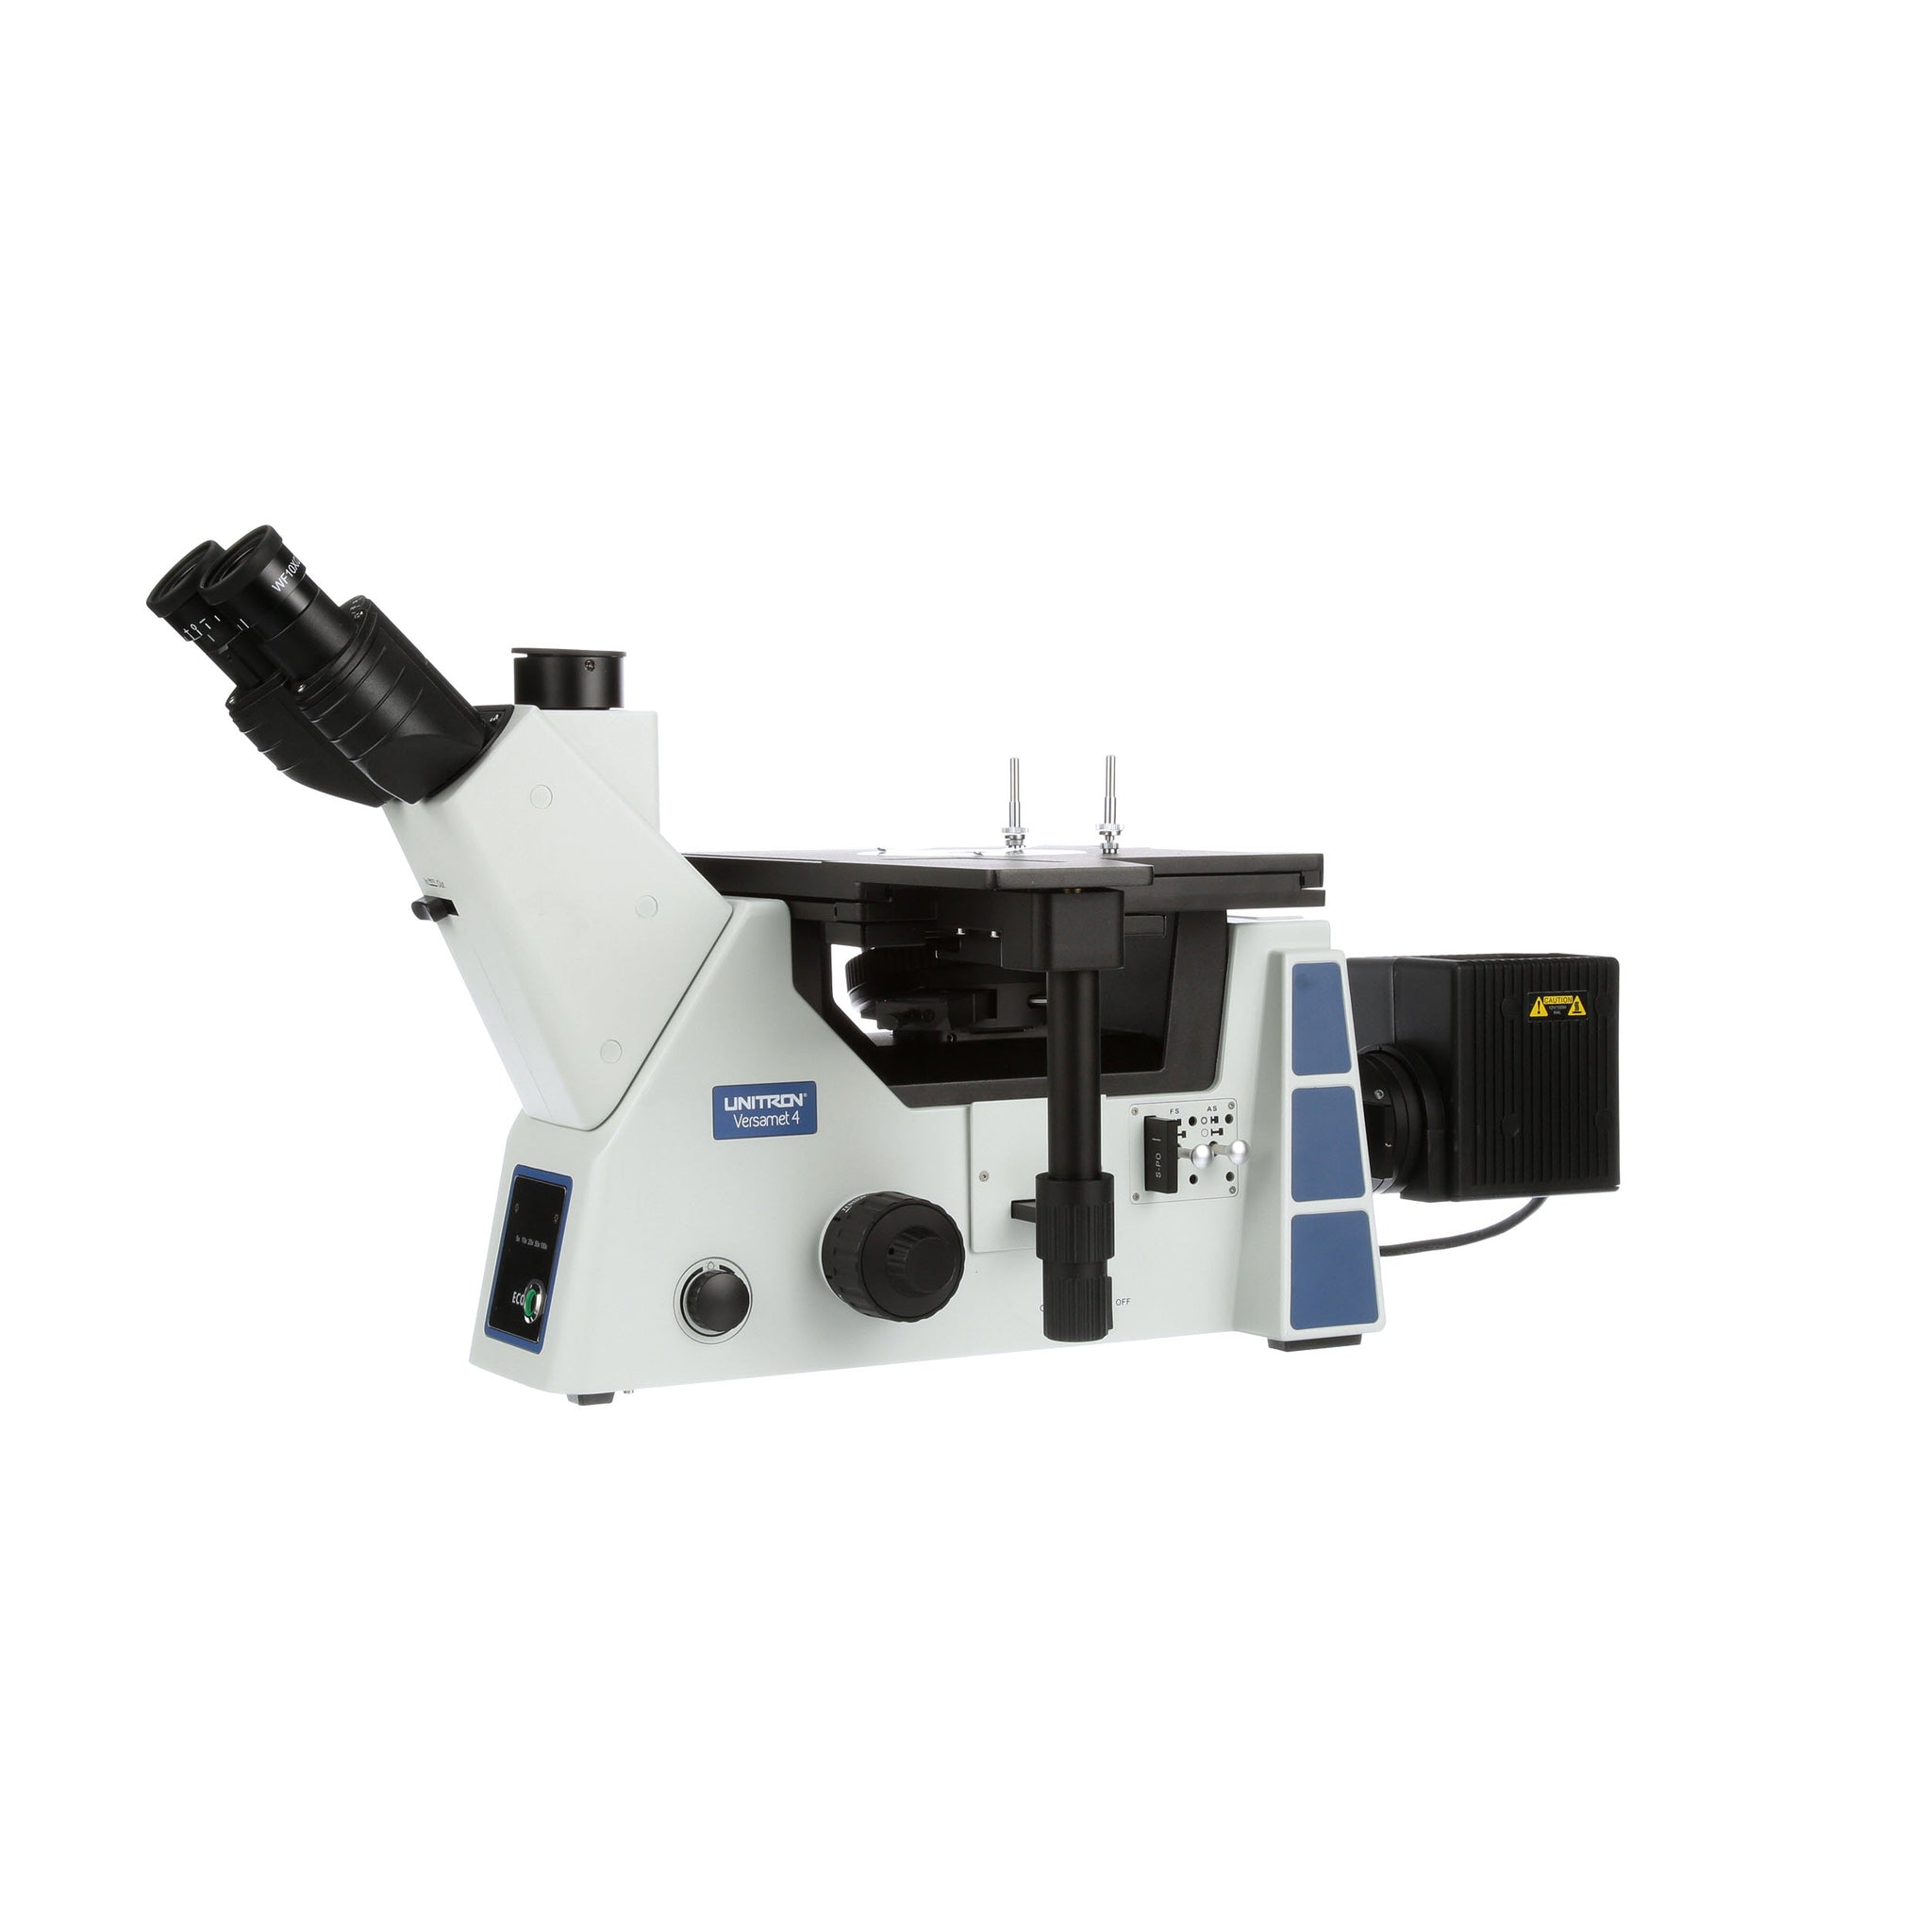 Unitron Versamet 4 Inverted Metallurgical Brightfield / Darkfield Microscope